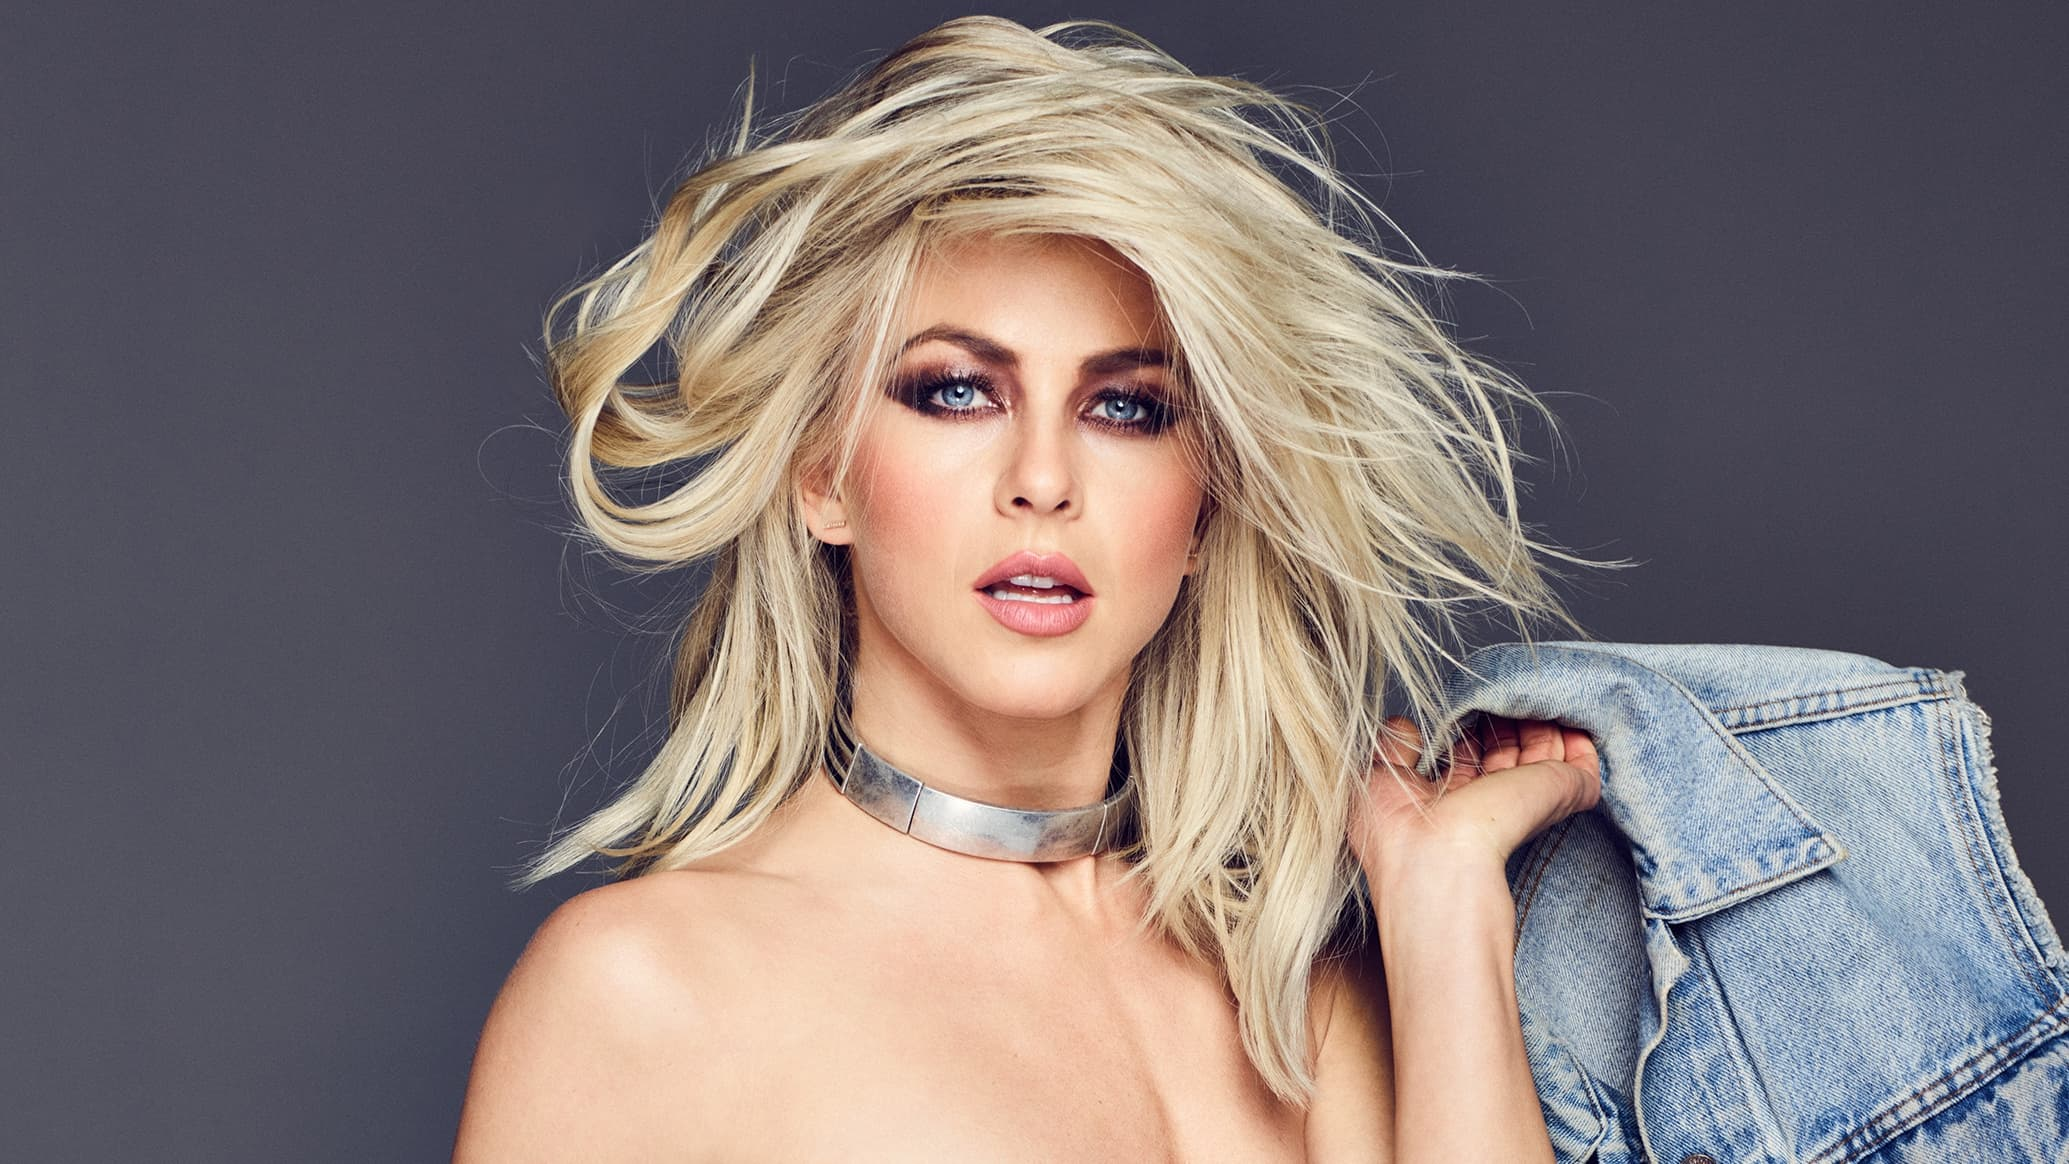 Car Games 2016 >> Julianne Hough Wallpapers, 23+ High Quality images